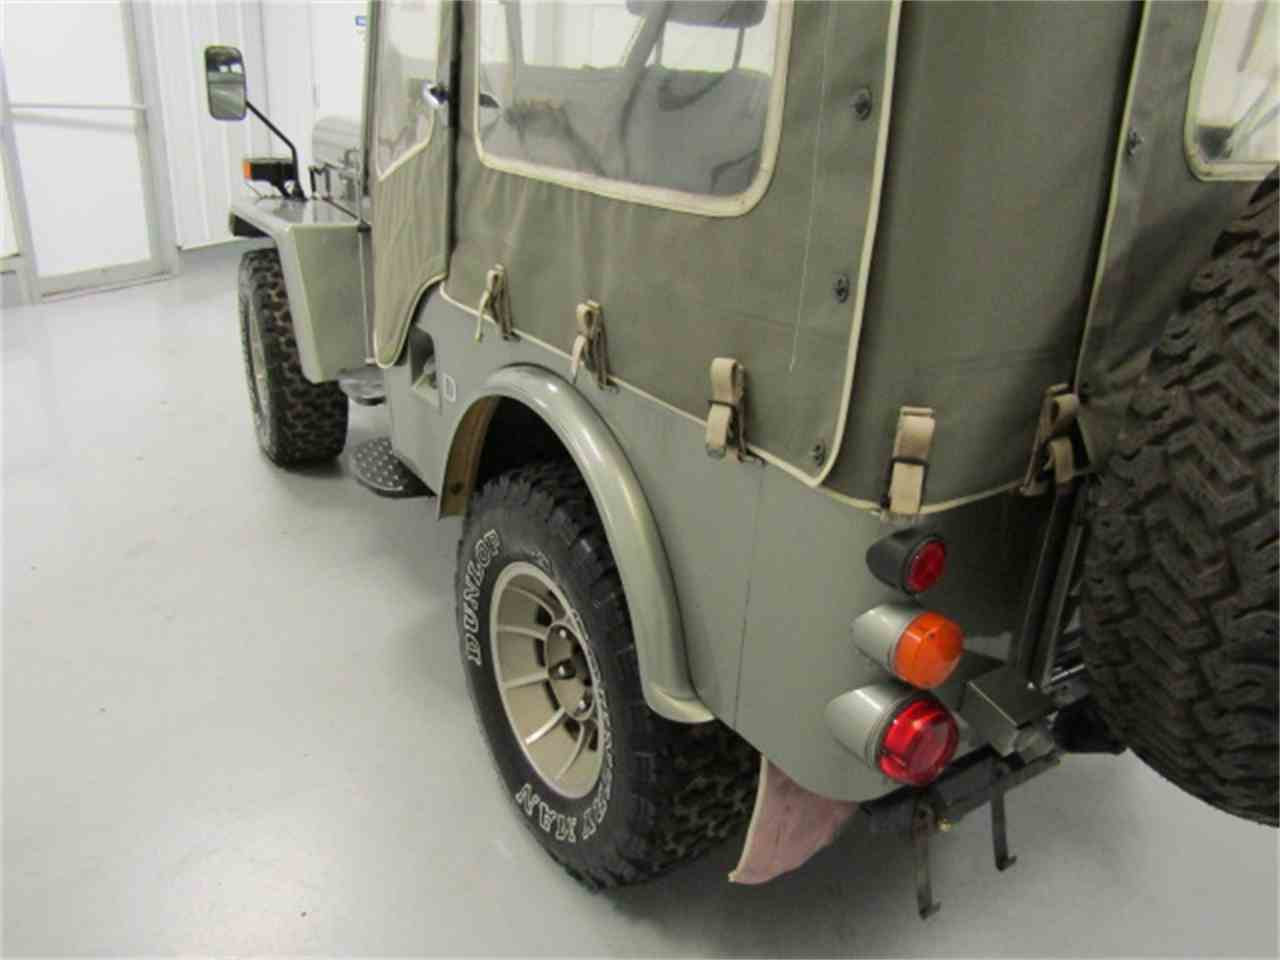 Large Picture of '79 Jeep located in Christiansburg Virginia - $10,999.00 - JM3M